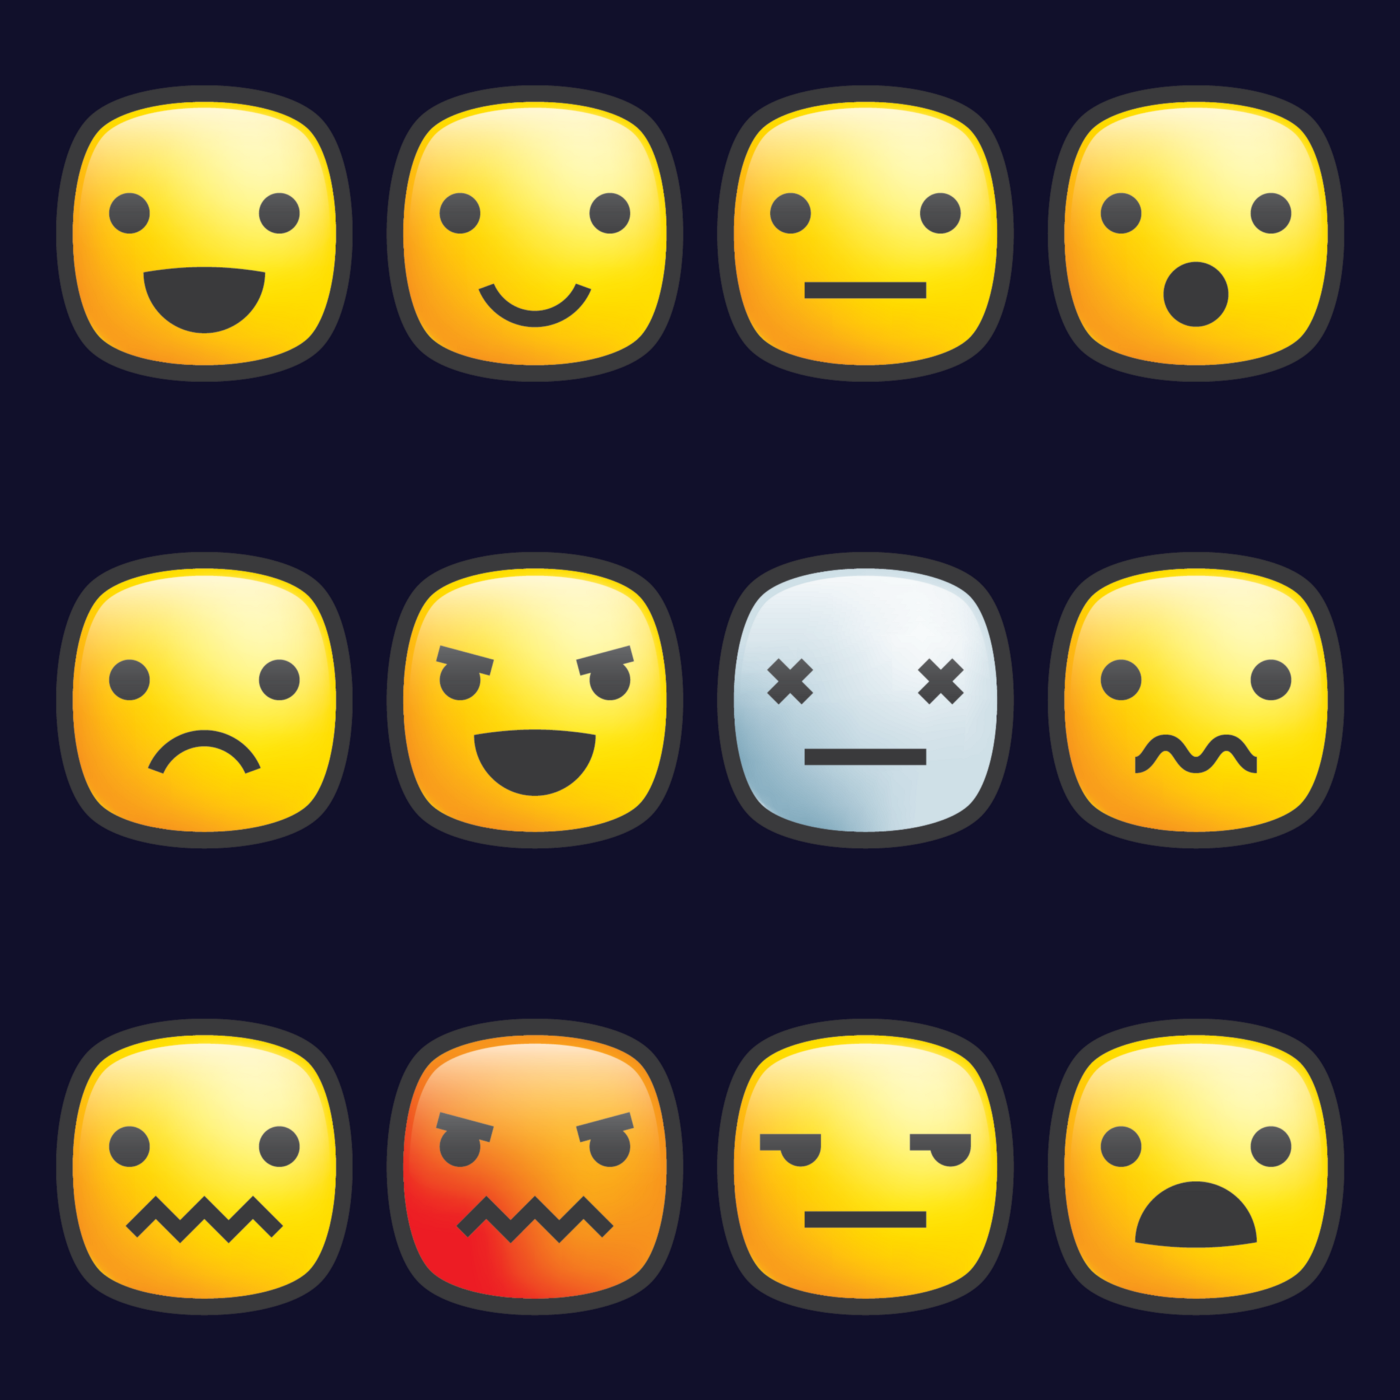 An range of emotions through emoji faces